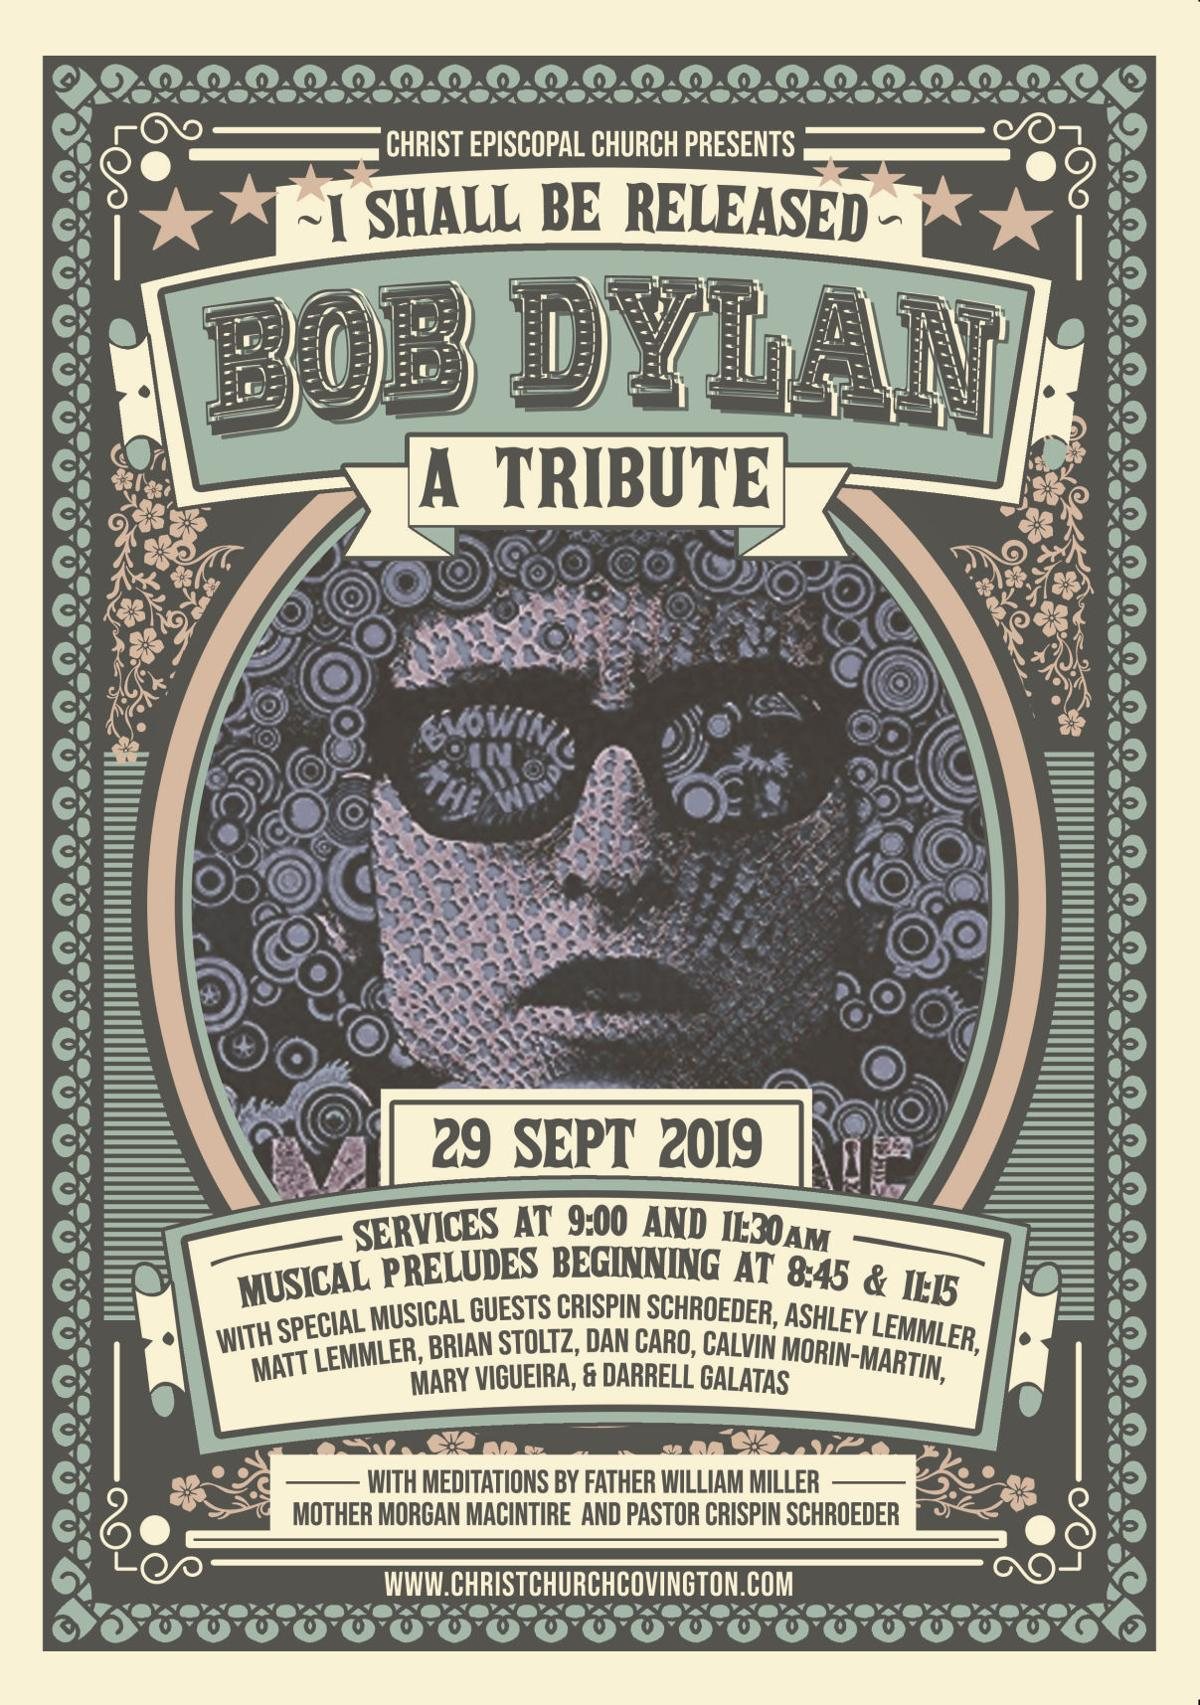 Bob Dylan tribute service poster